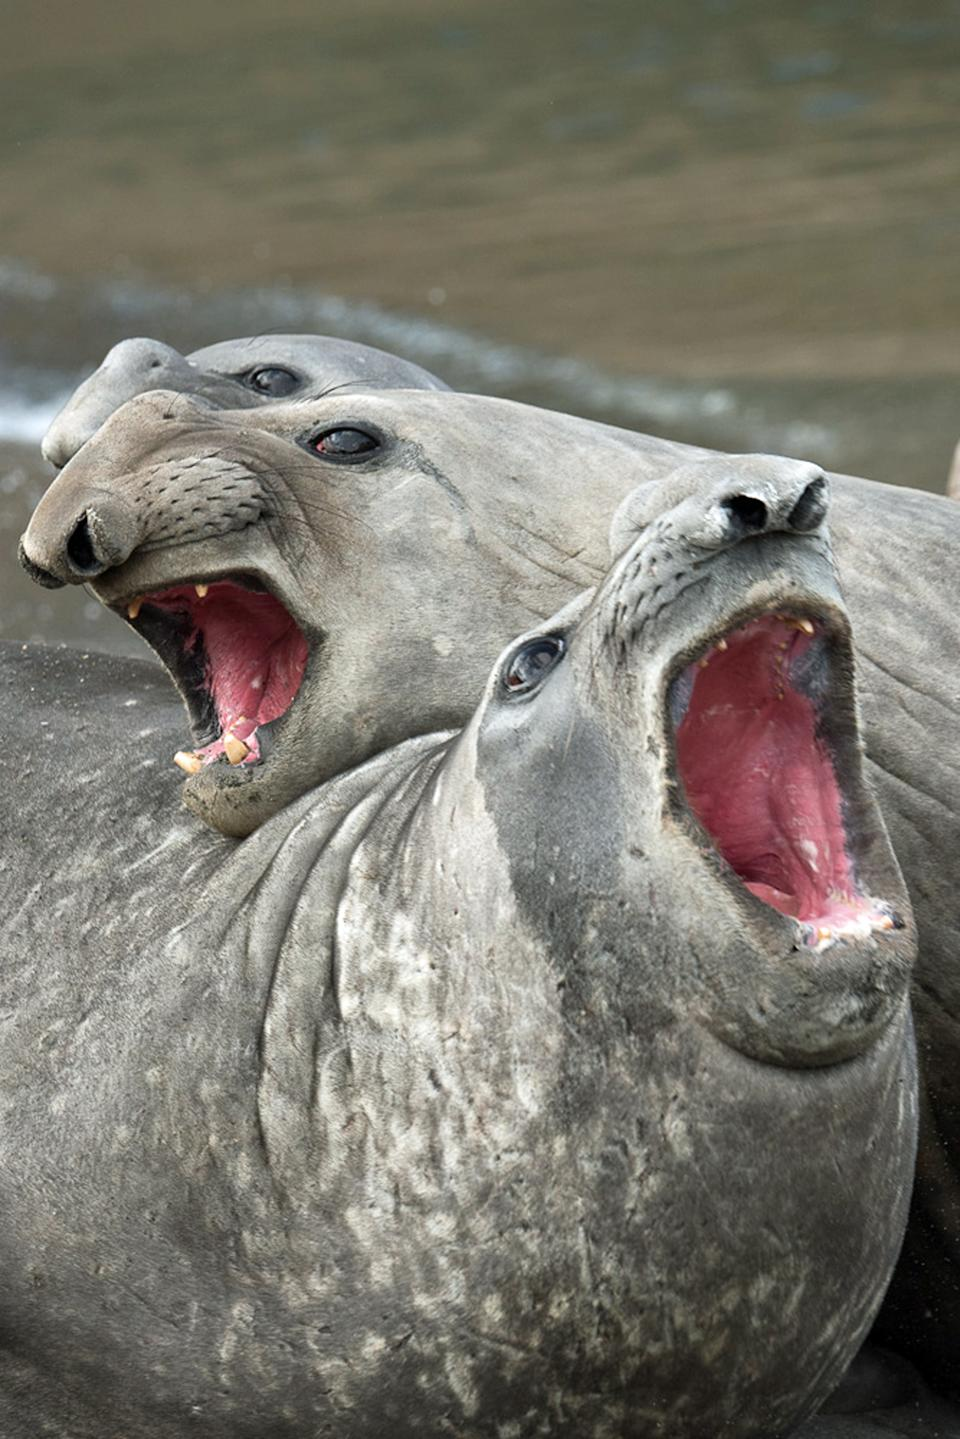 A trio of elephant seals appear to be doing their best impression of the Three Tenors. (Photo: Roie Galitz/Caters News)